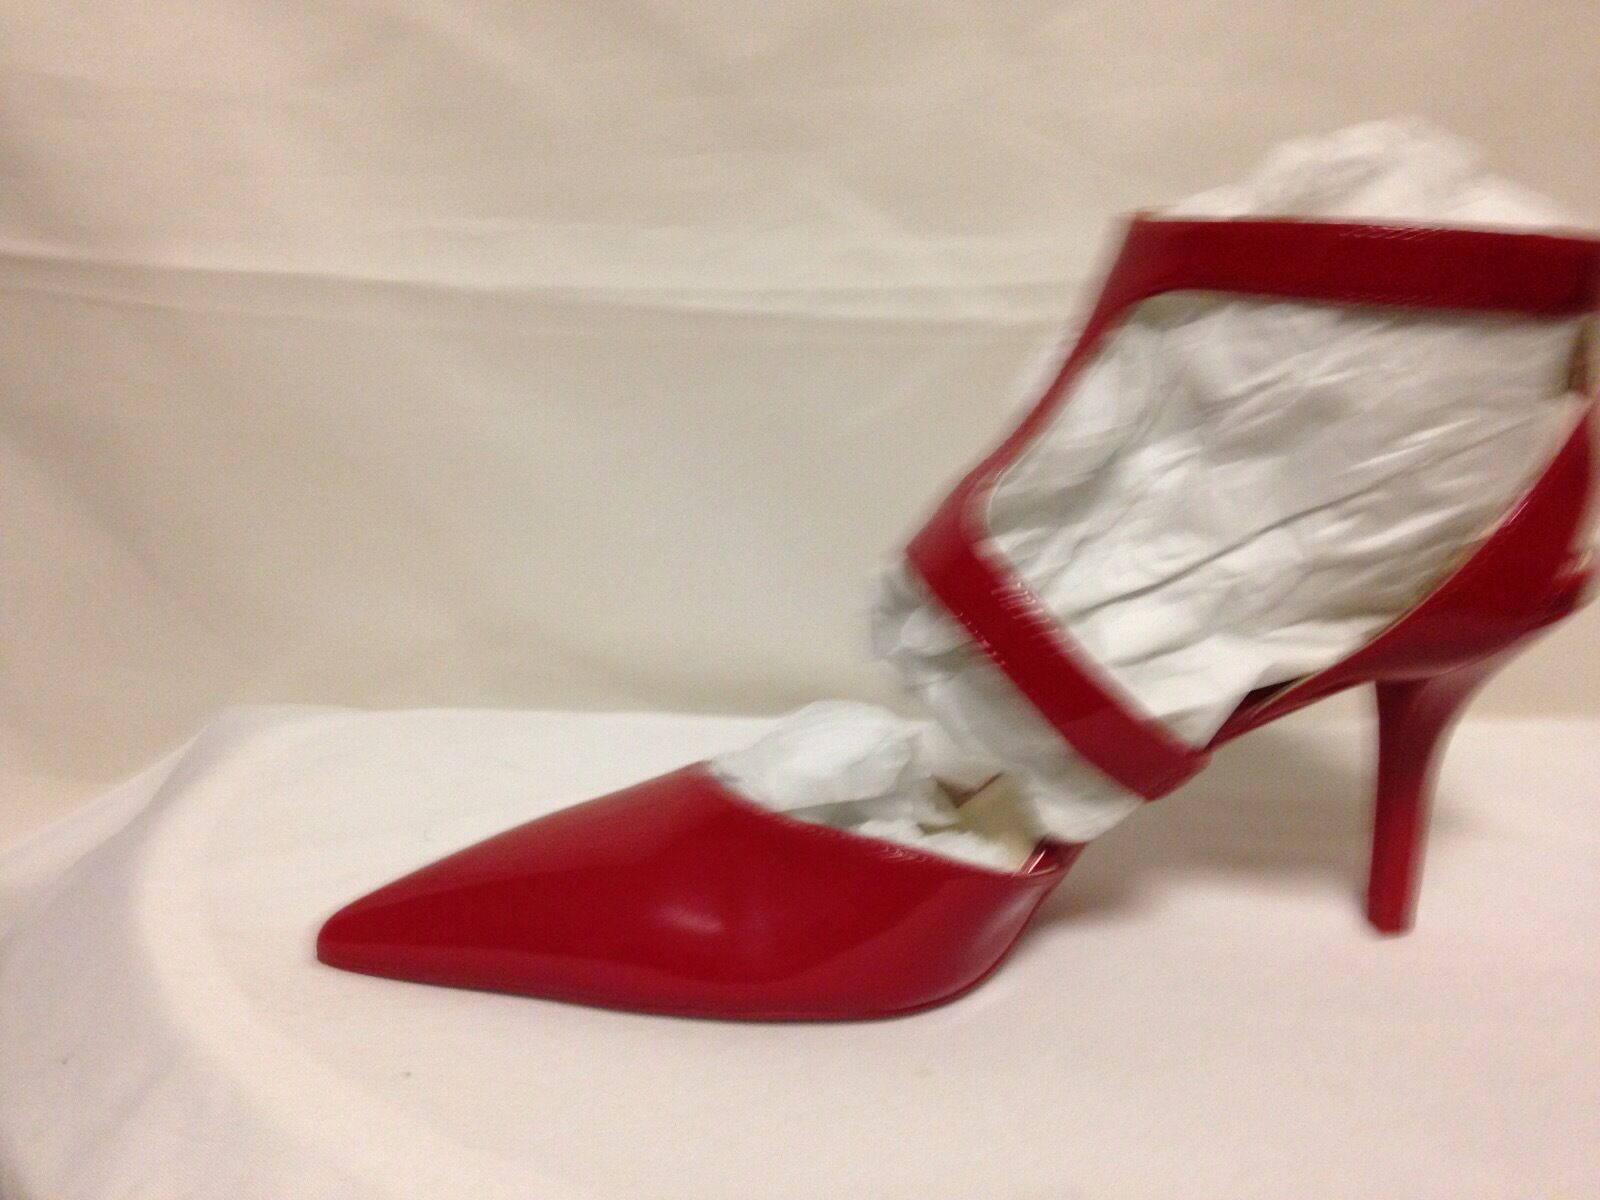 Kenneth Cole Laird Strappy M Pointed Toe Pump 11 M Strappy Red  New w/Defects 95fddf